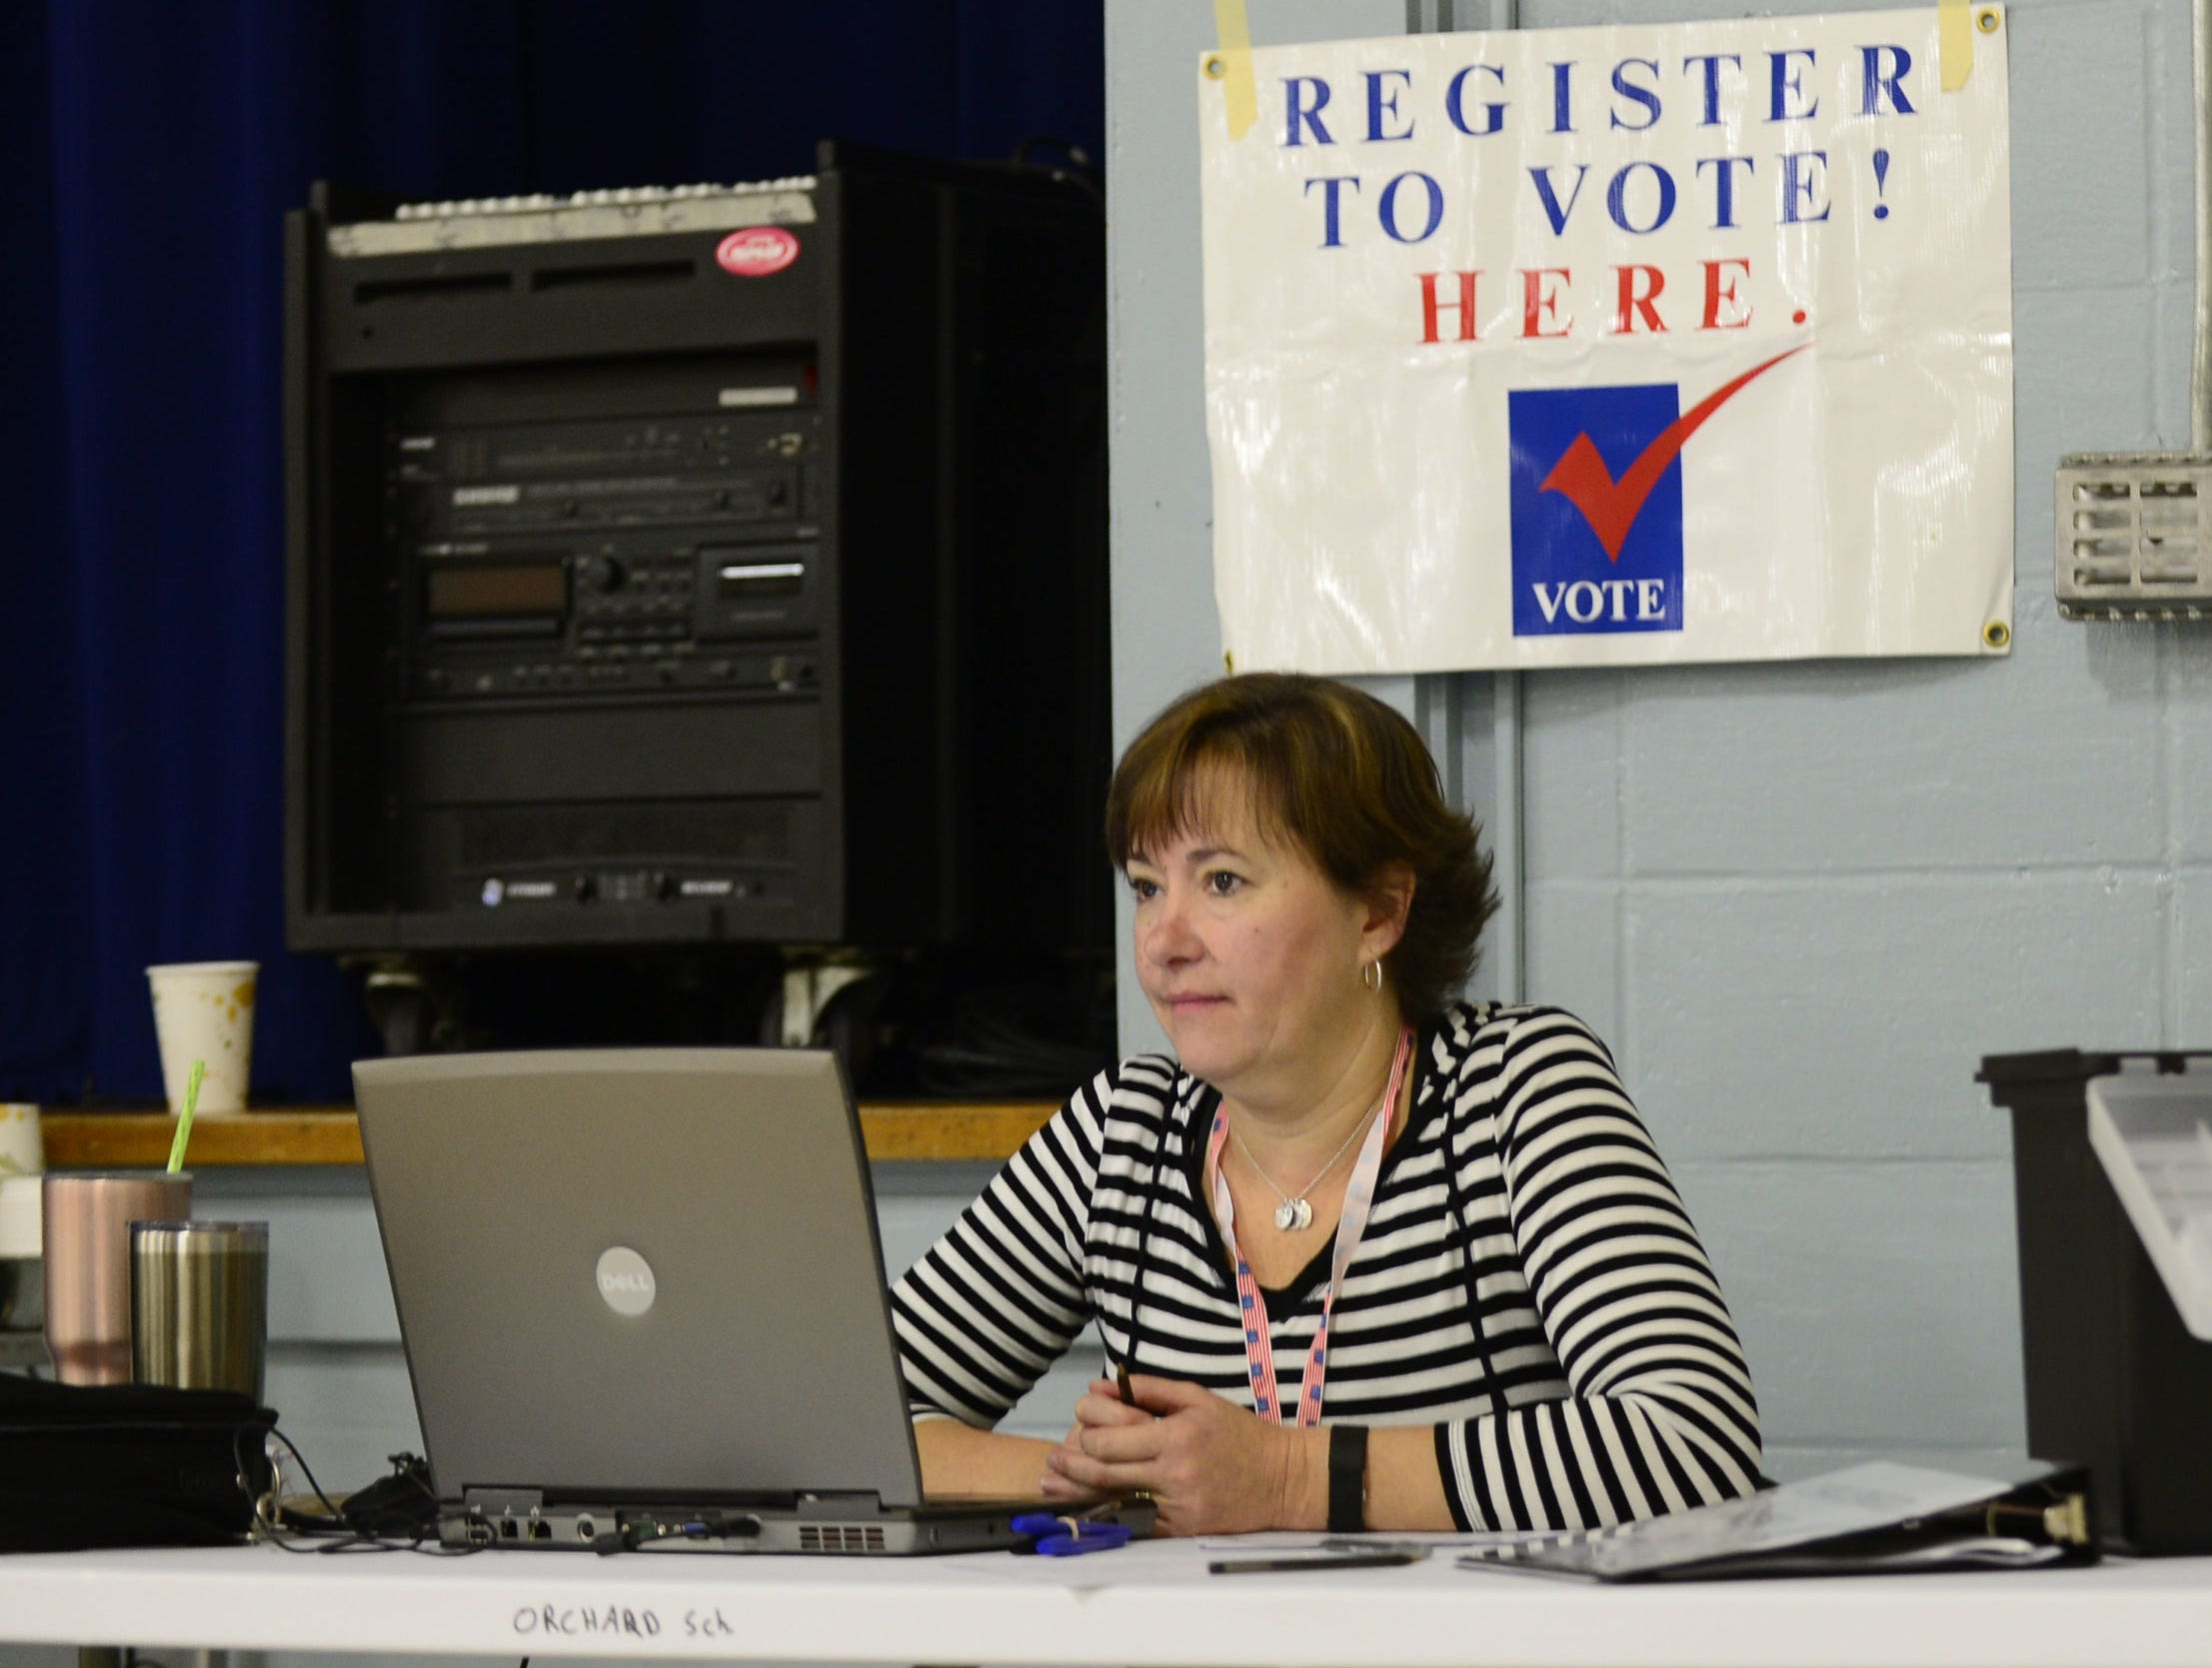 Andrea Leo, public service specialist for the city of South Burlington, waits for people who want to register to vote on election day, Nov. 6, 2018, at the Orchard School in South Burlington. Leo said she had signed up 8 people in the first 90 minutes of voting.